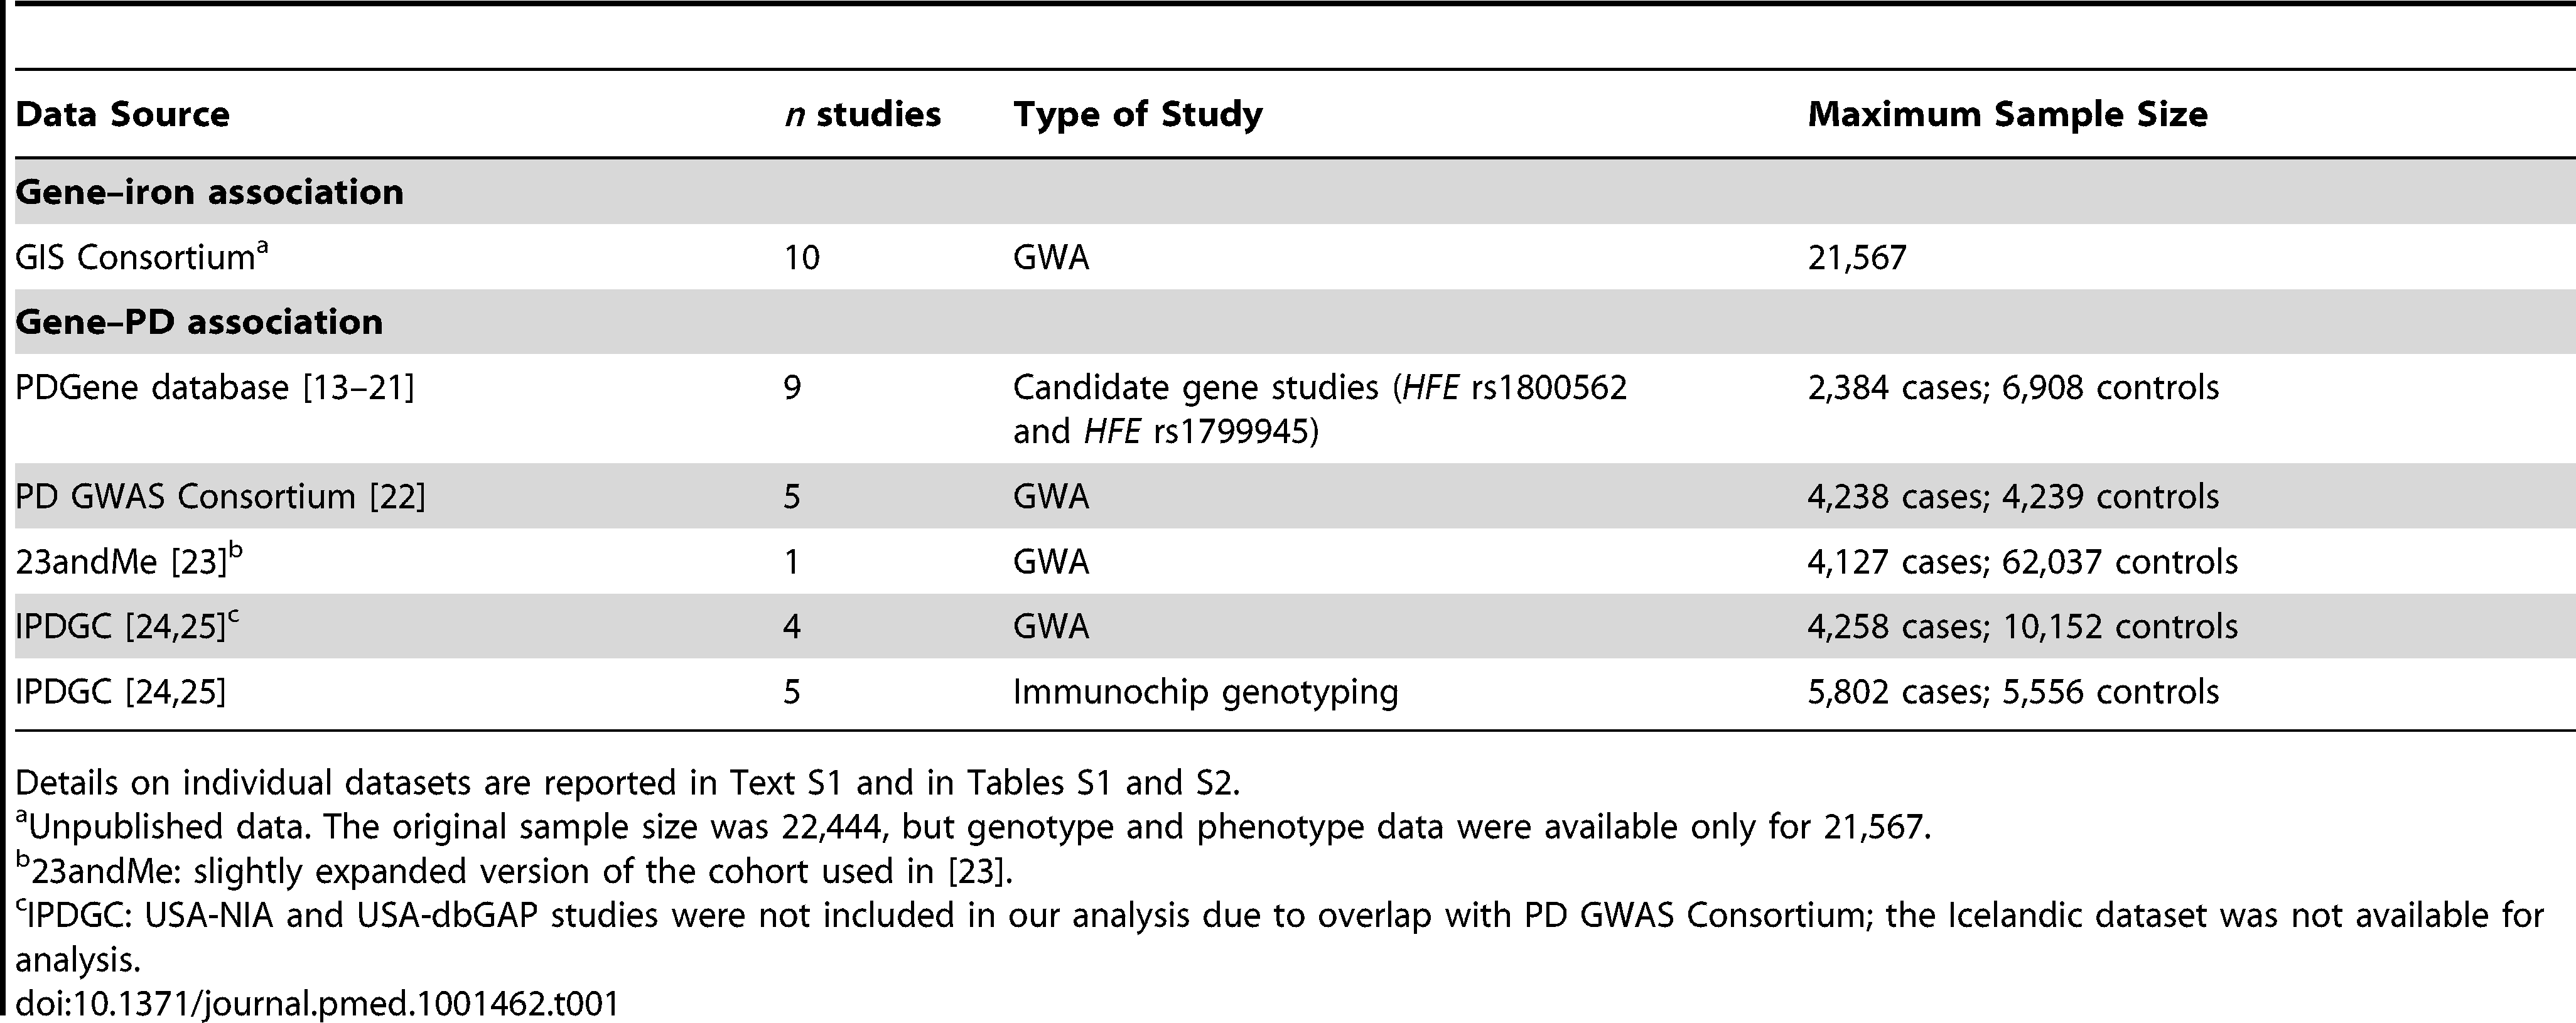 Characteristics of the studies included for the gene–iron and gene–PD associations.